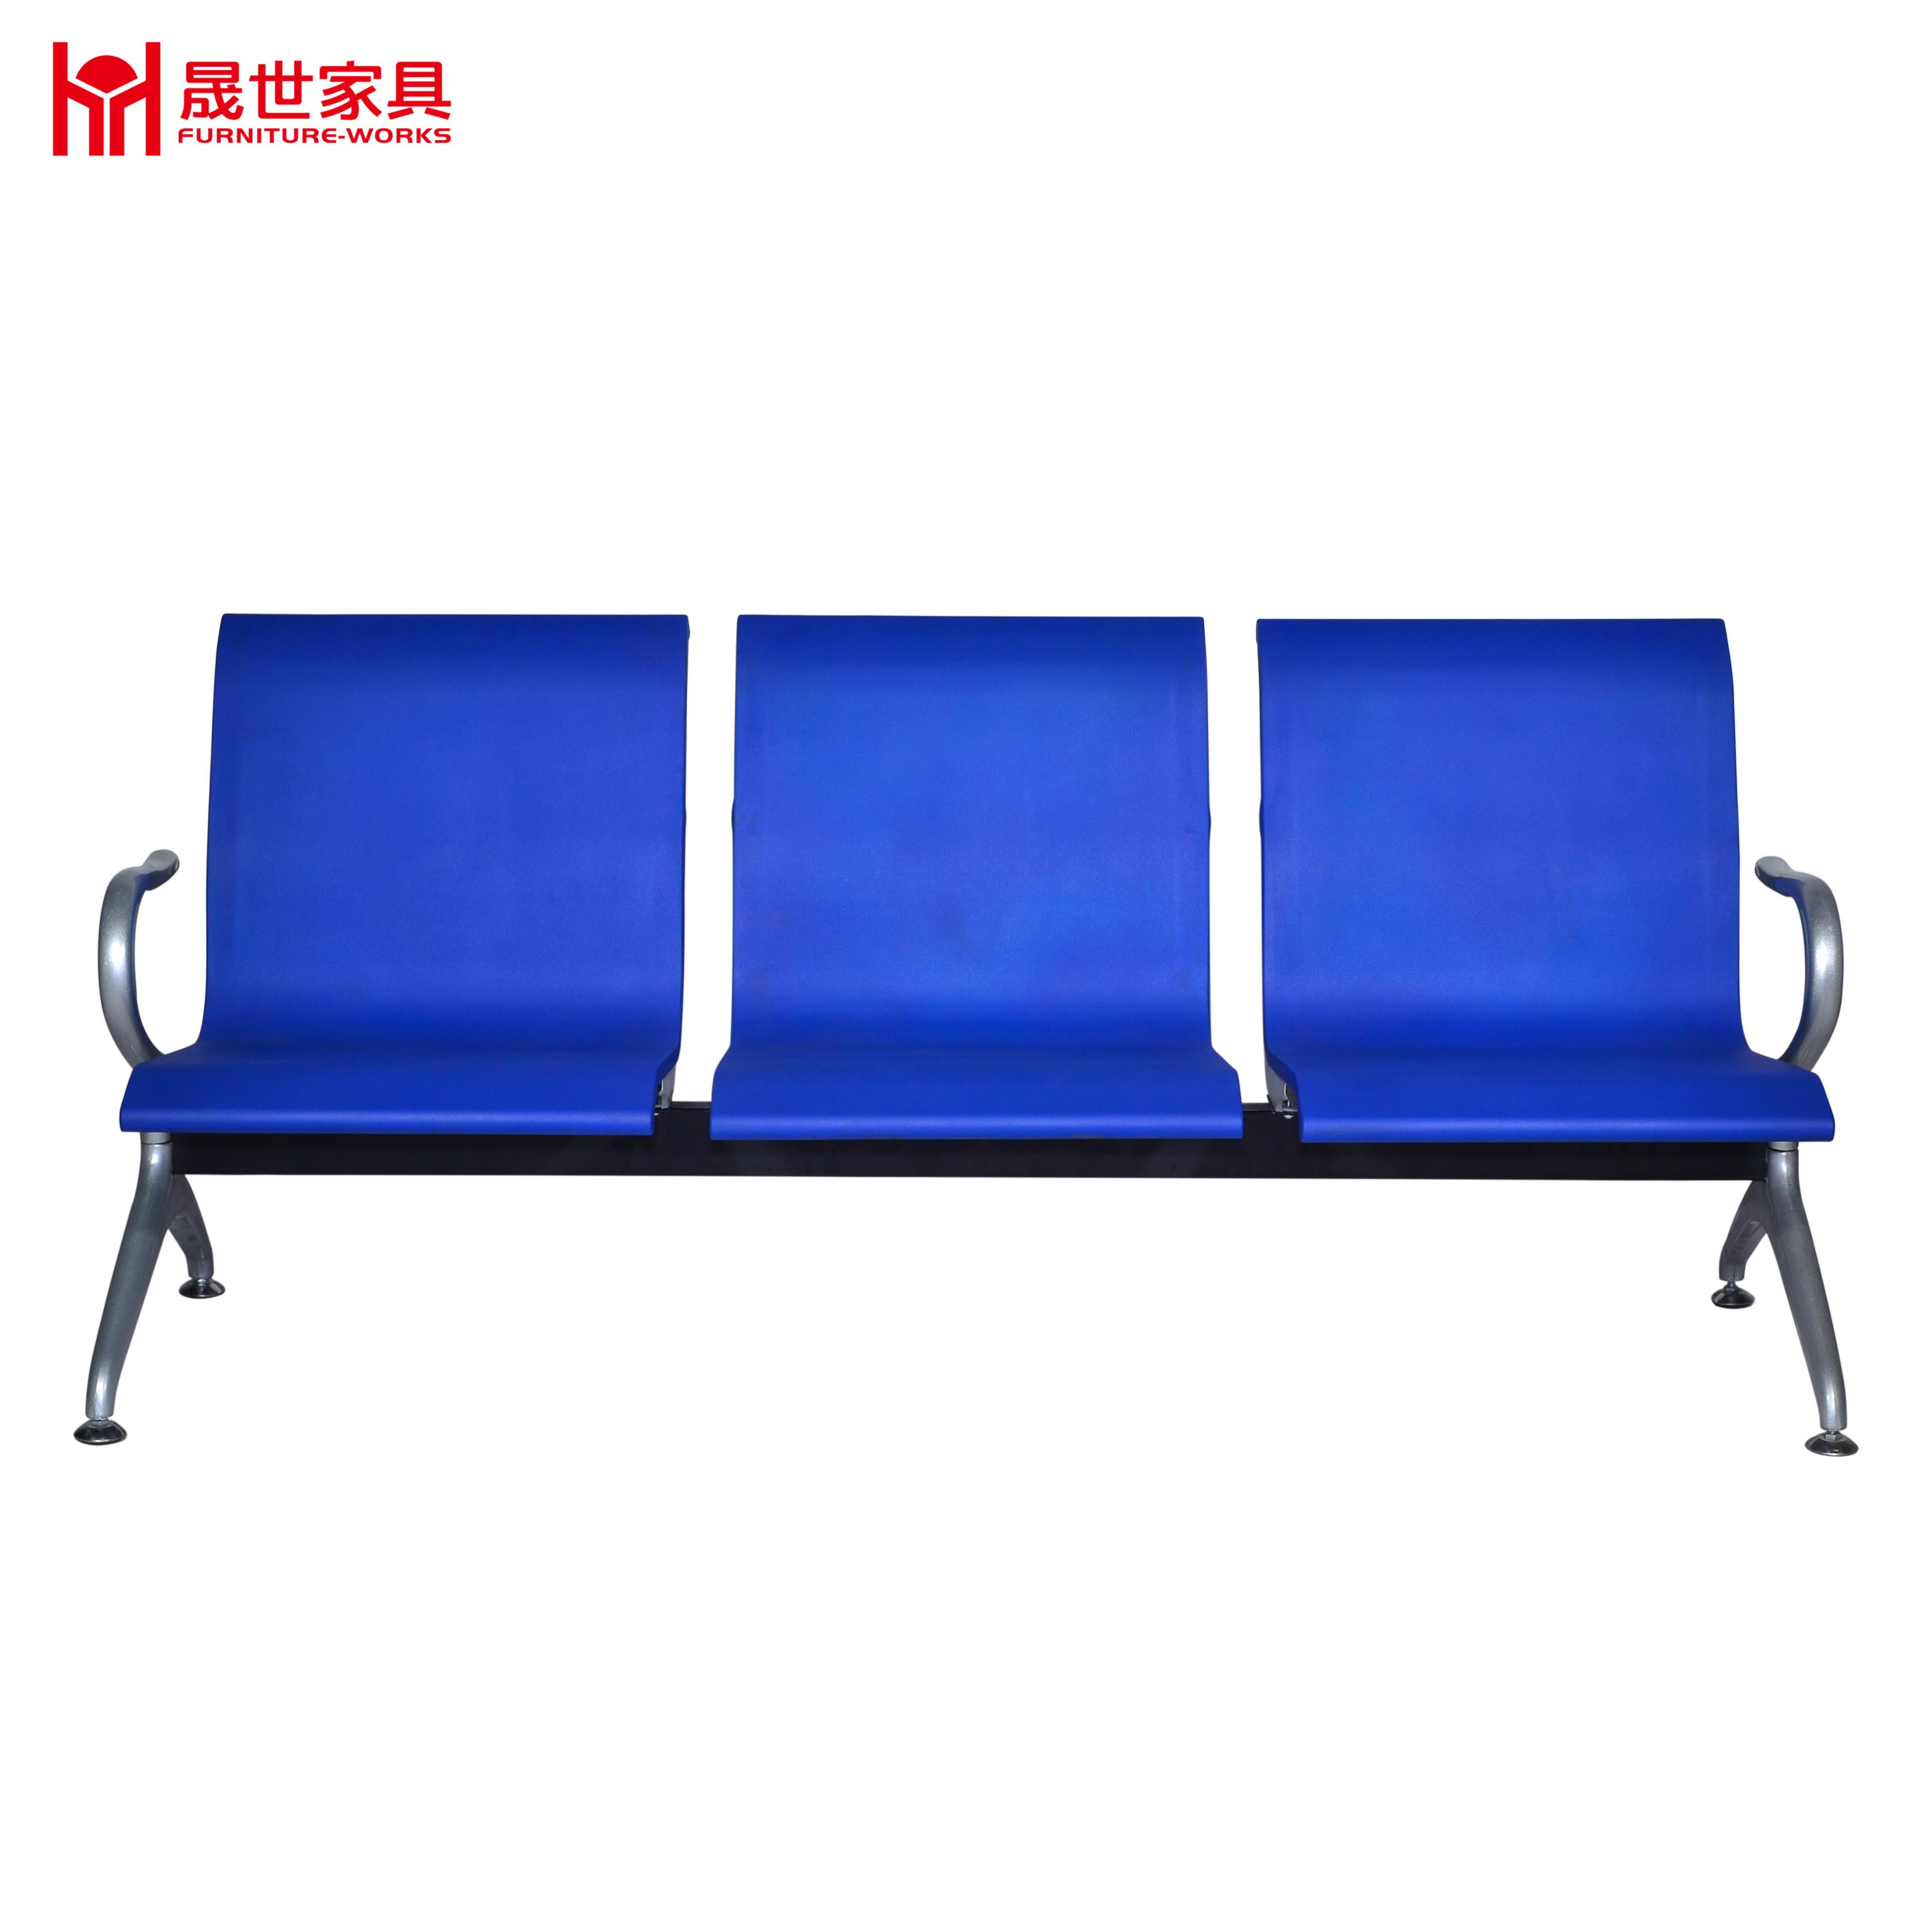 Airport/Hospital/Station Bench Chair with PU 3-Seater Waiting Chair From China Supplier